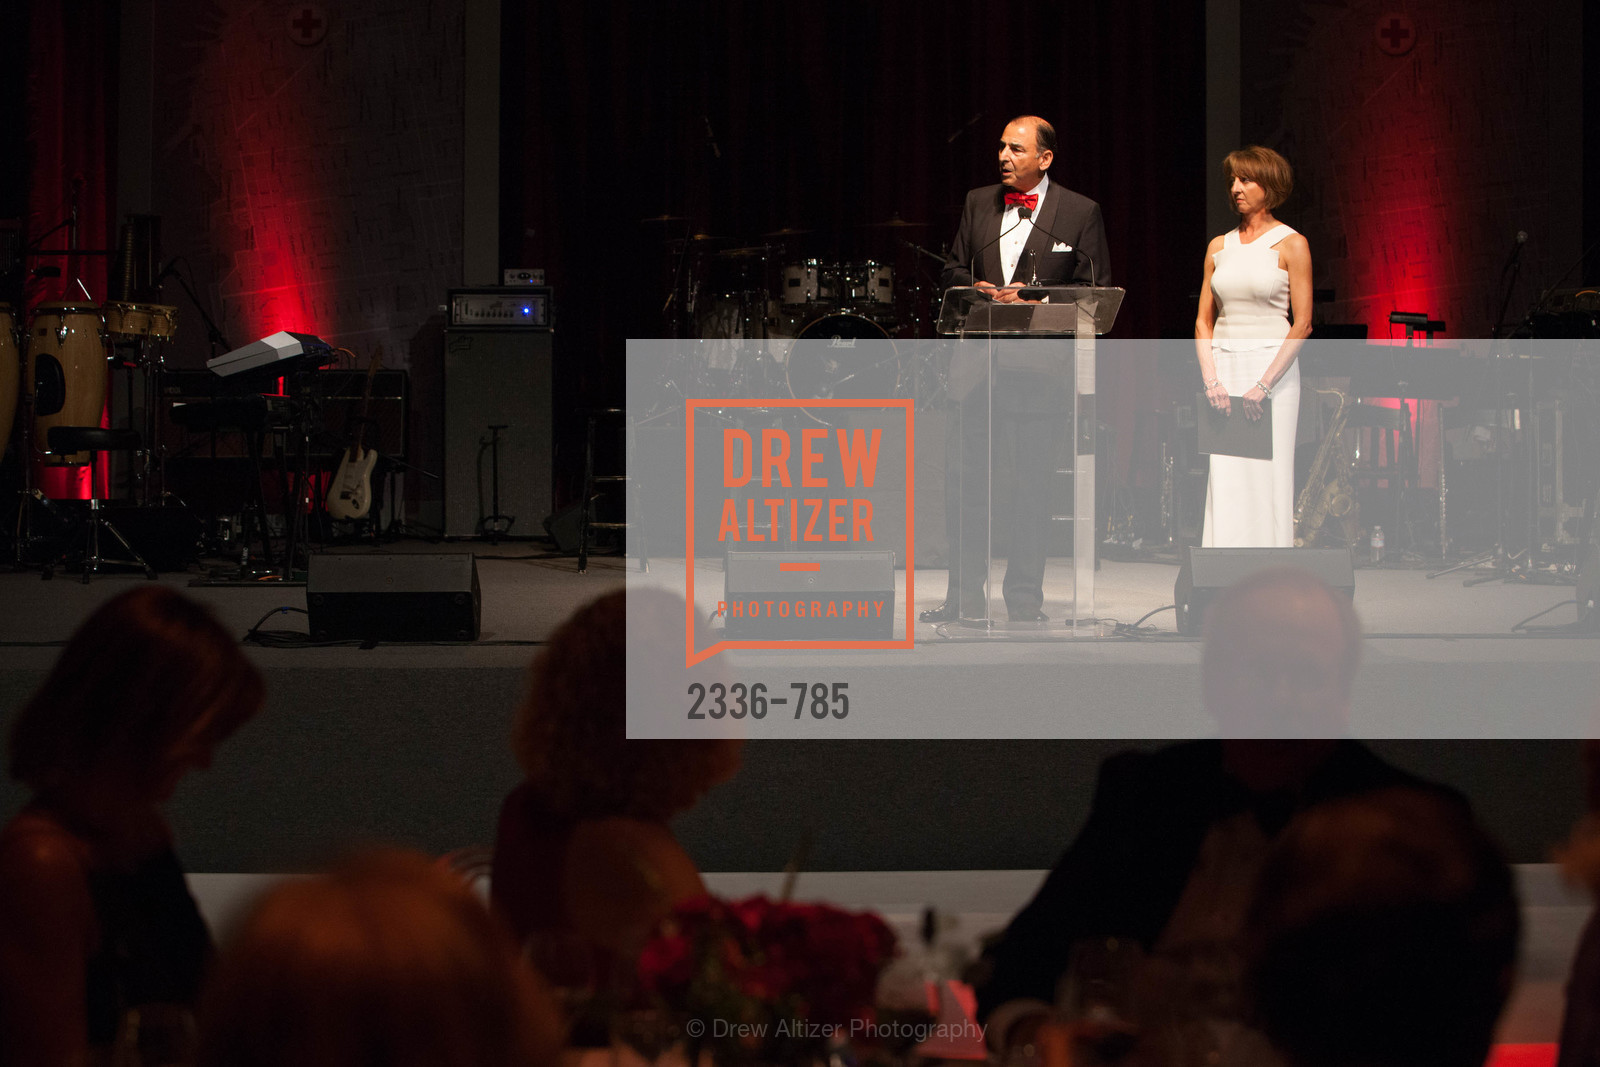 Alexander Mehran, Teresa Briggs, 2015 RED CROSS Gala, US, April 11th, 2015,Drew Altizer, Drew Altizer Photography, full-service agency, private events, San Francisco photographer, photographer california